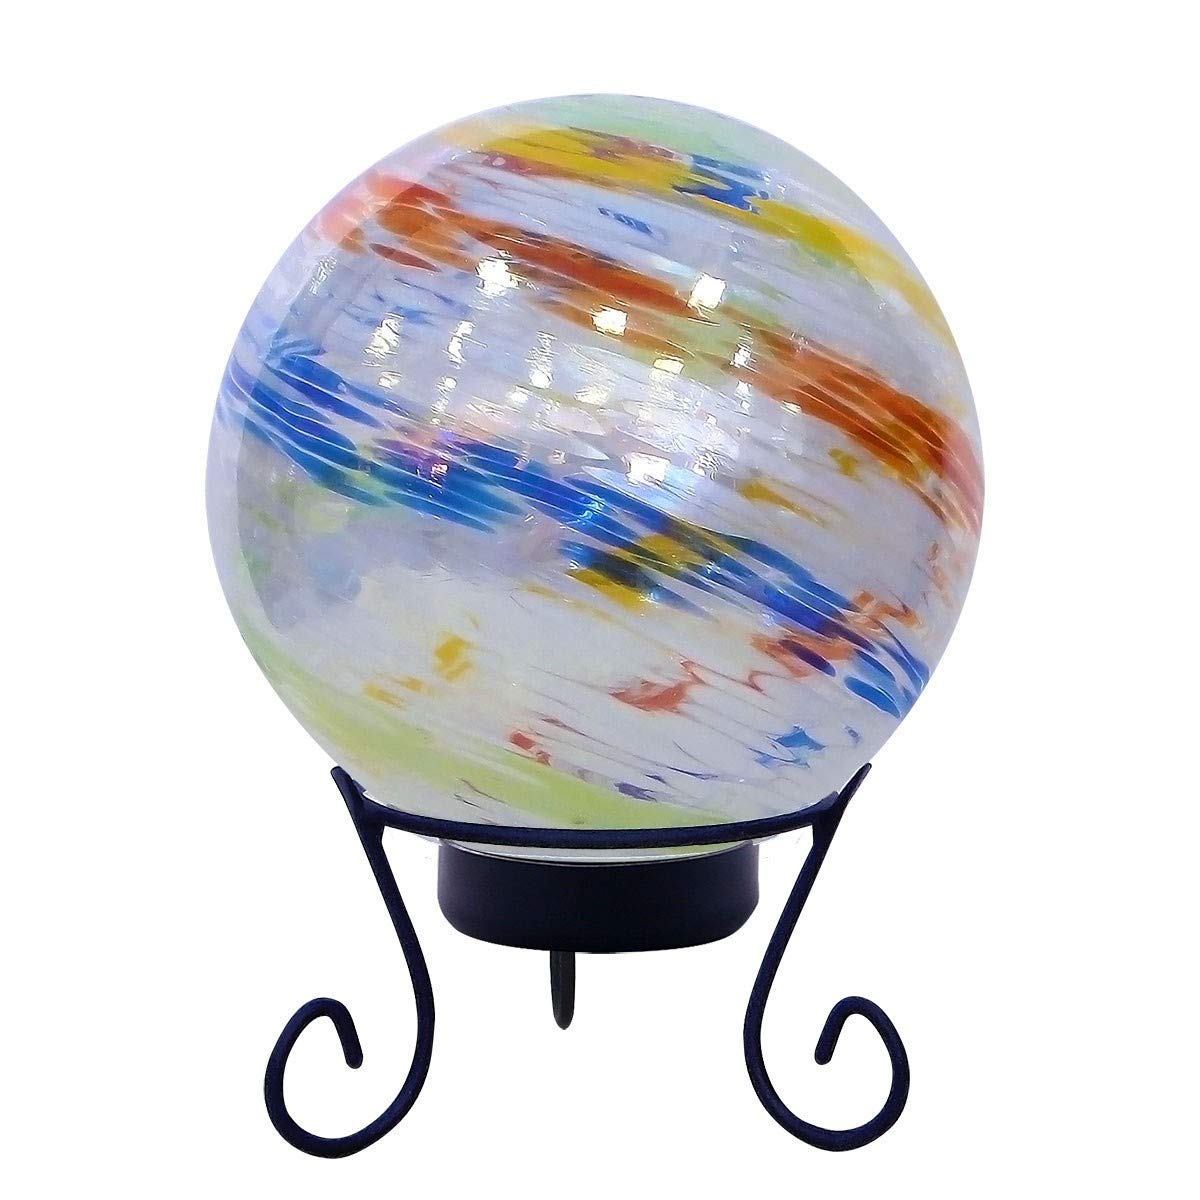 Alpine HGY310A-TM Gazing Globe with LED Lights, 10 Inch Tall Multi-Color